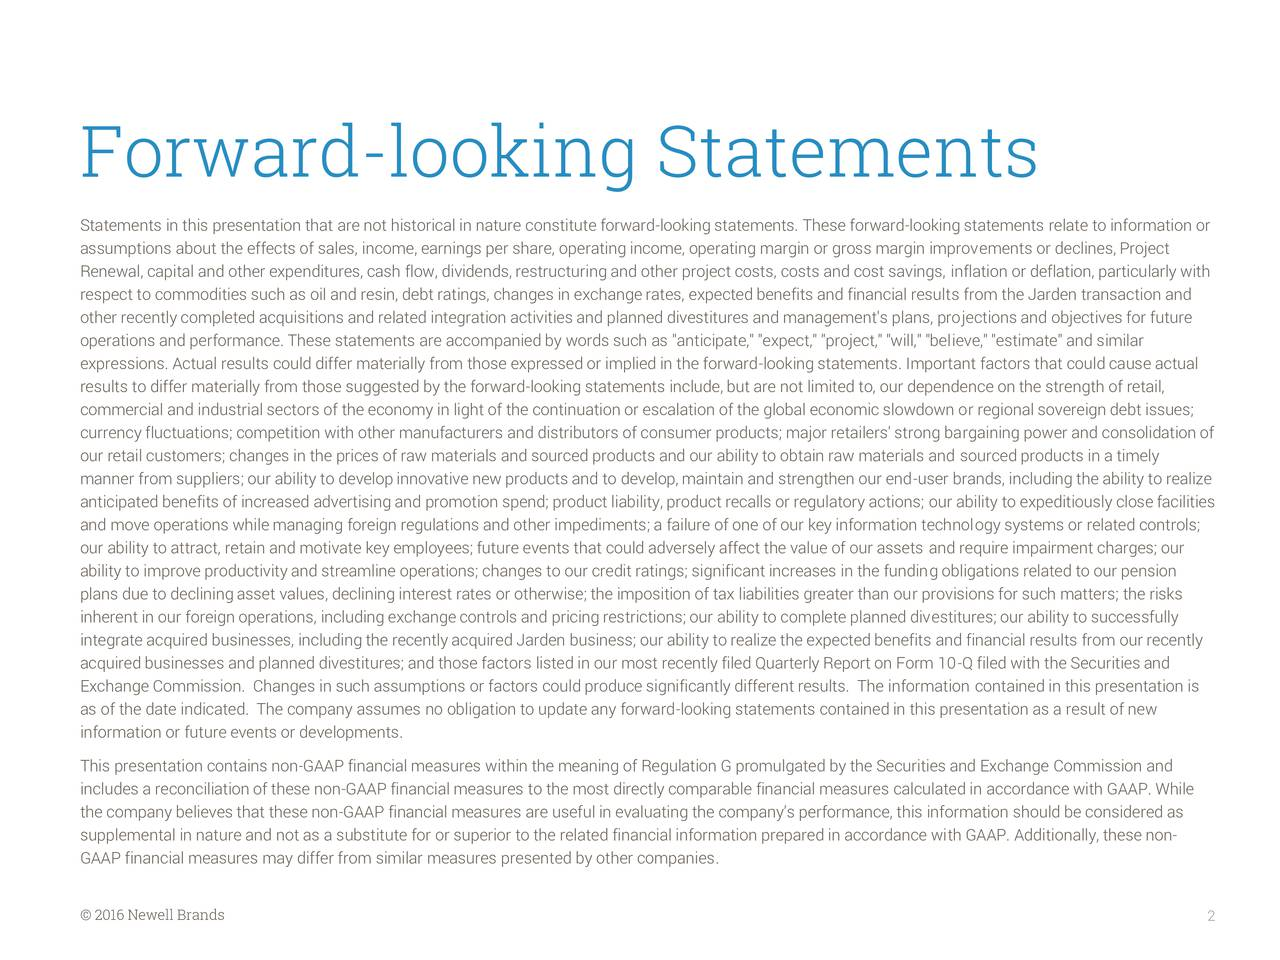 """Statements in this presentation that are not historical in nature constitute forward-looking statements. These forward-looking statements relate to information or assumptions about the effects of sales, income, earnings per share, operating income, operating margin or gross margin improvements or declines, Project Renewal, capital and other expenditures, cash flow, dividends, restructuring and other project costs, costs and cost savings, inflation or deflation, particularly with respect to commodities such as oil and resin, debt ratings, changes in exchange rates, expected benefits and financial results from the Jarden transaction and other recently completed acquisitions and related integration activities and planned divestitures and management's plans, projections and objectives for future operations and performance. These statements are accompanied by words such as """"anticipate,"""" """"expect,"""" """"project,"""" """"will,"""" """"believe,"""" """"estimate"""" and similar expressions. Actual results could differ materially from those expressed or implied in the forward-looking statements. Important factors that could cause actual results to differ materially from those suggested by the forward-looking statements include, but are not limited to, our dependence on the strength of retail, commercial and industrial sectors of the economy in light of the continuation or escalation of the global economic slowdown or regional sovereign debt issues; currency fluctuations; competition with other manufacturers and distributors of consumer products; major retailers' strong bargaining power and consolidation of our retail customers; changes in the prices of raw materials and sourced products and our ability to obtain raw materials and sourced products in a timely manner from suppliers; our ability to develop innovative new products and to develop, maintain and strengthen our end-user brands, including the ability to realize anticipated benefits of increased advertising and promotion spend; product liabilit"""